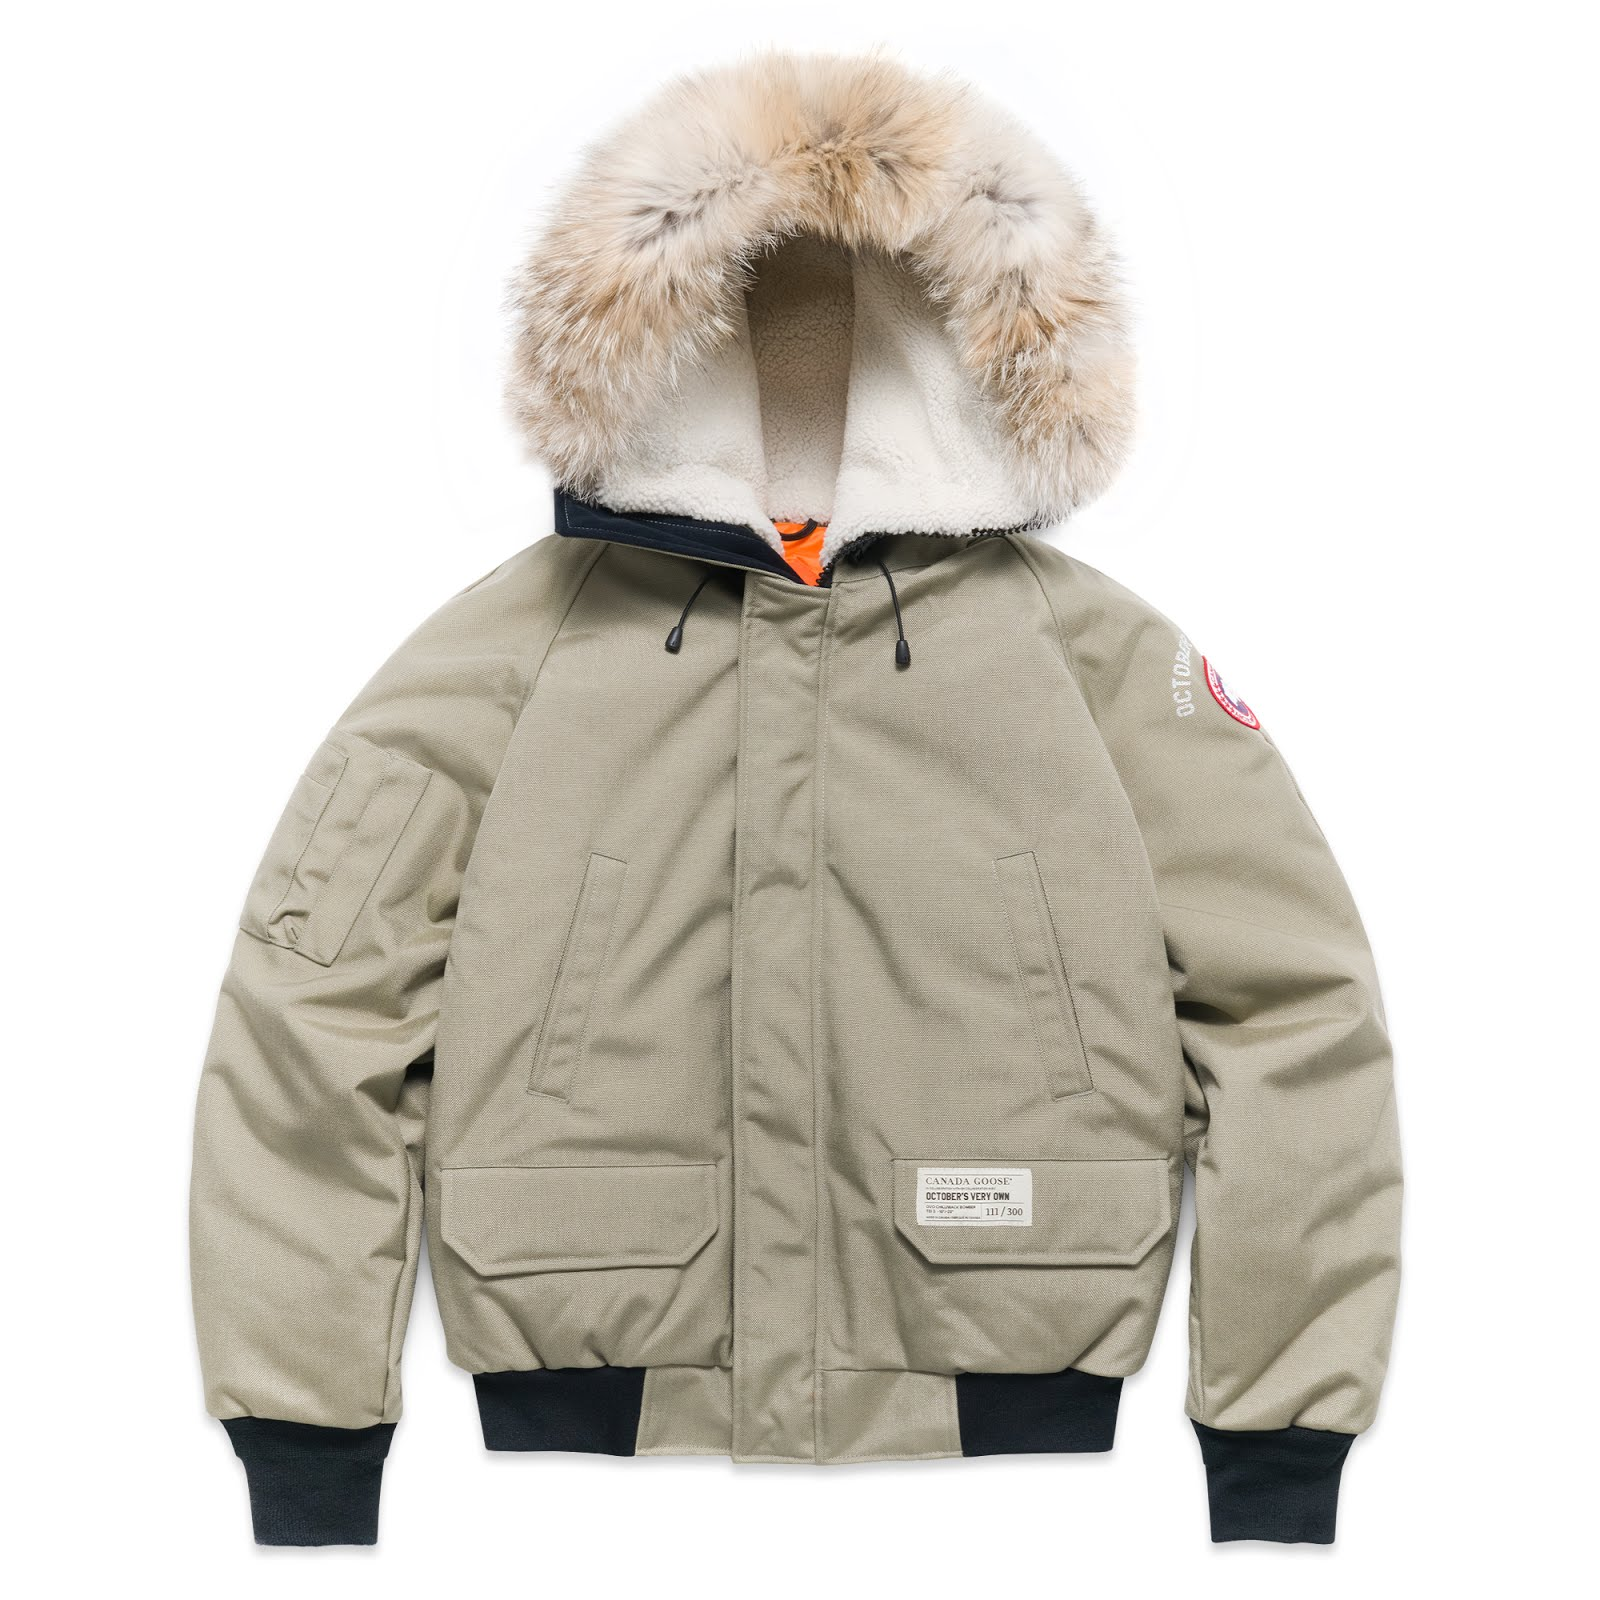 4530c708a8d Canada Goose Ovo Chilliwack Bomber